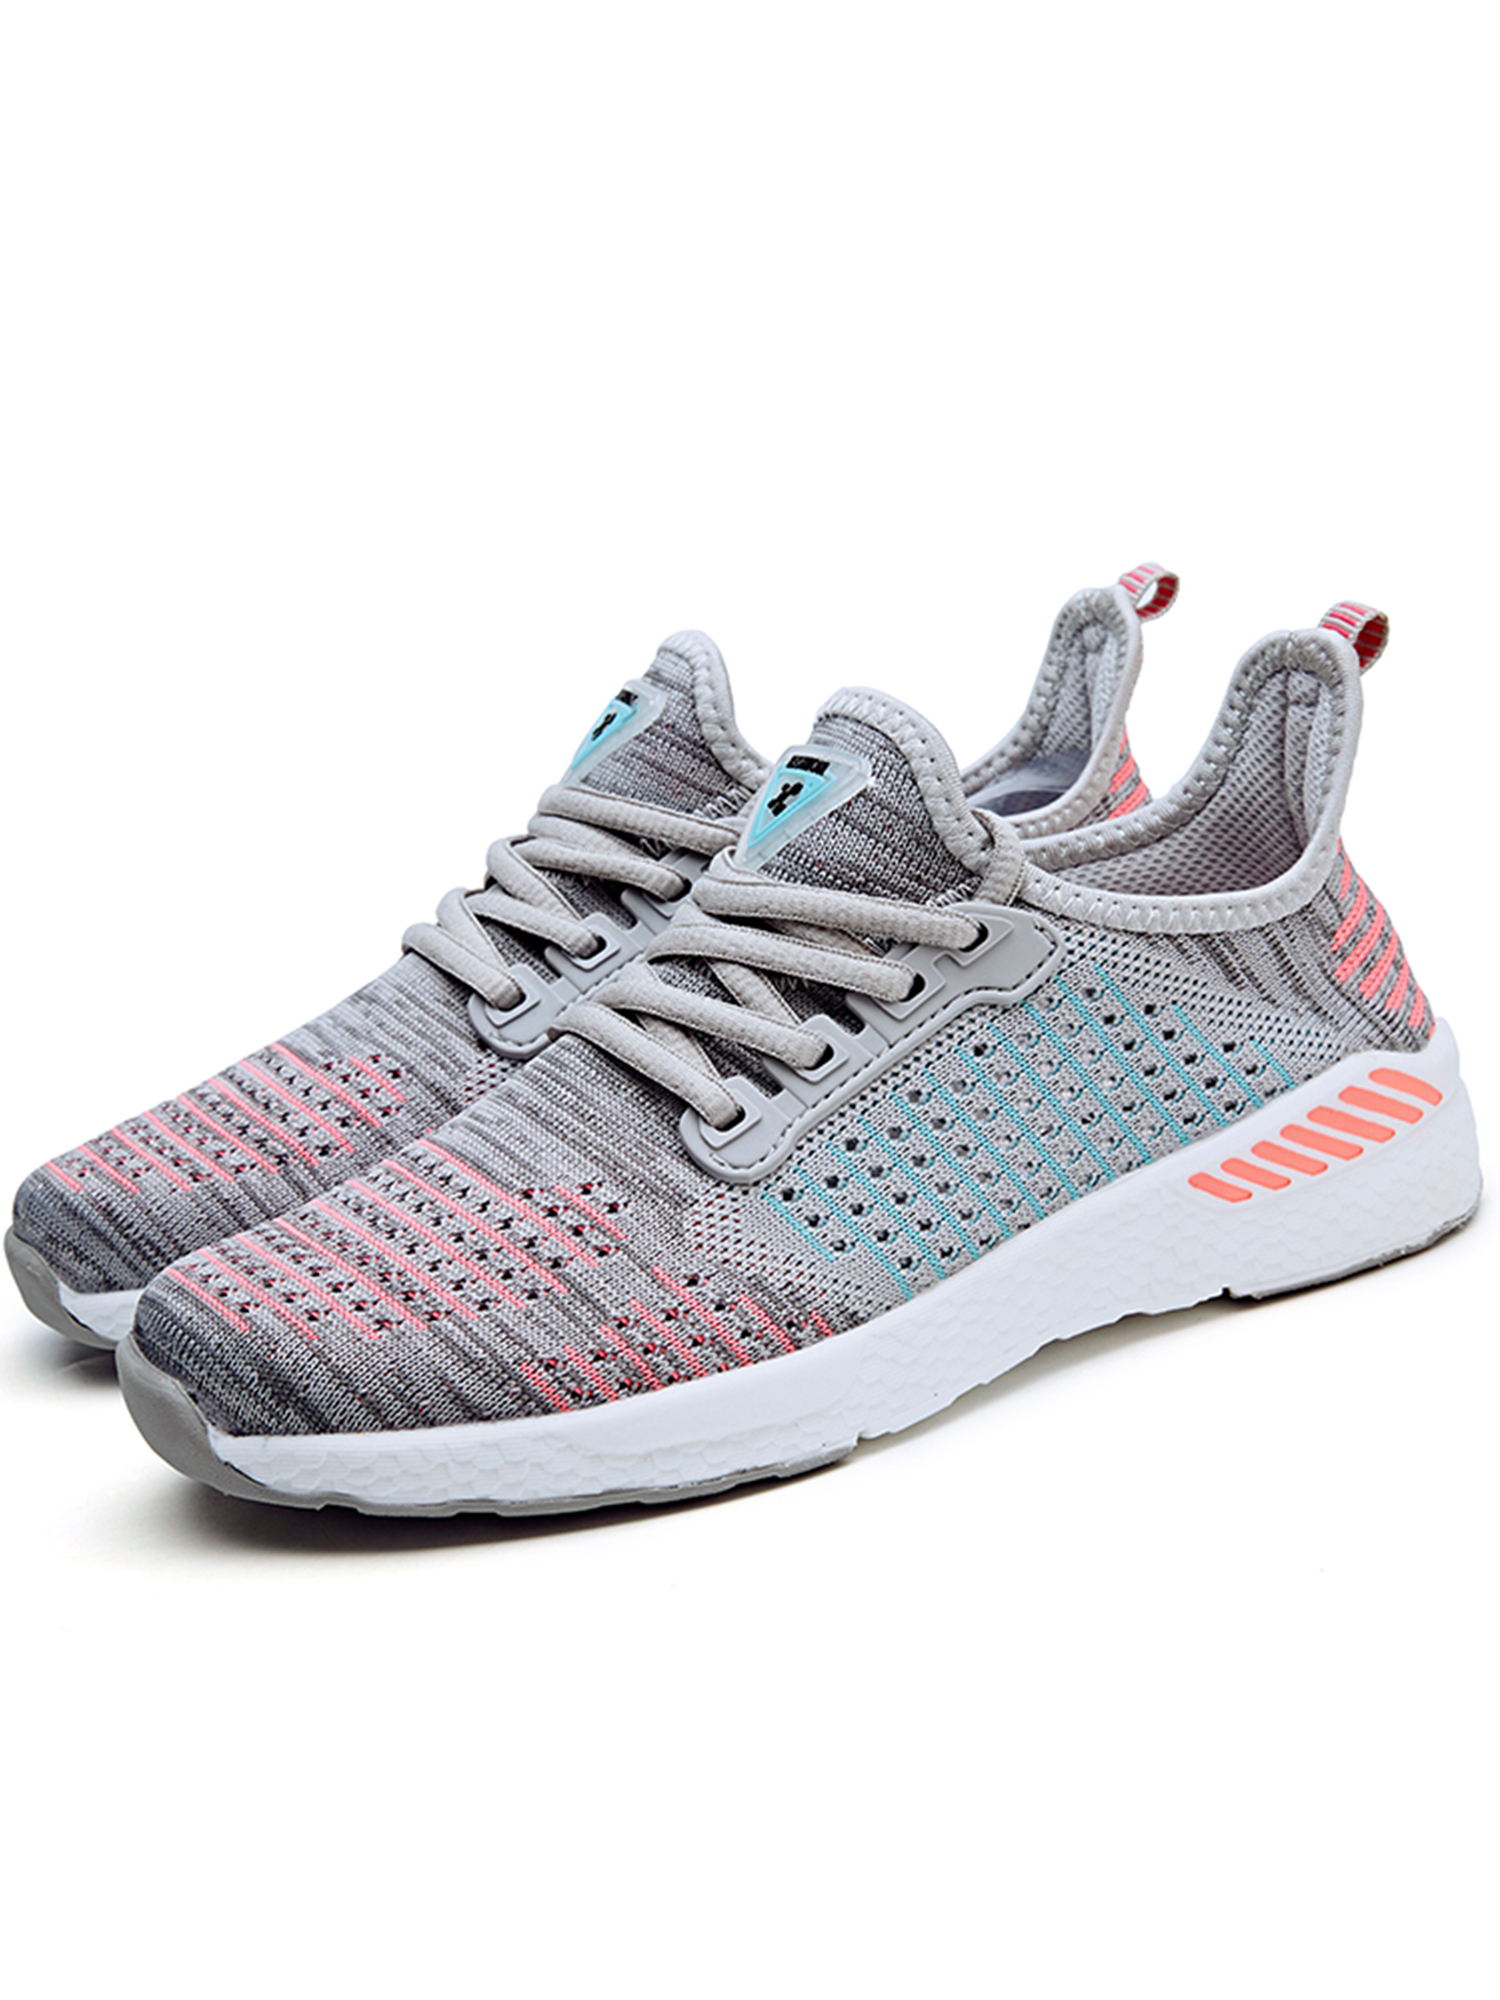 Mens Running Fruit Shoes Fashion Breathable Sneakers Mesh Soft Sole Casual Athletic Lightweight